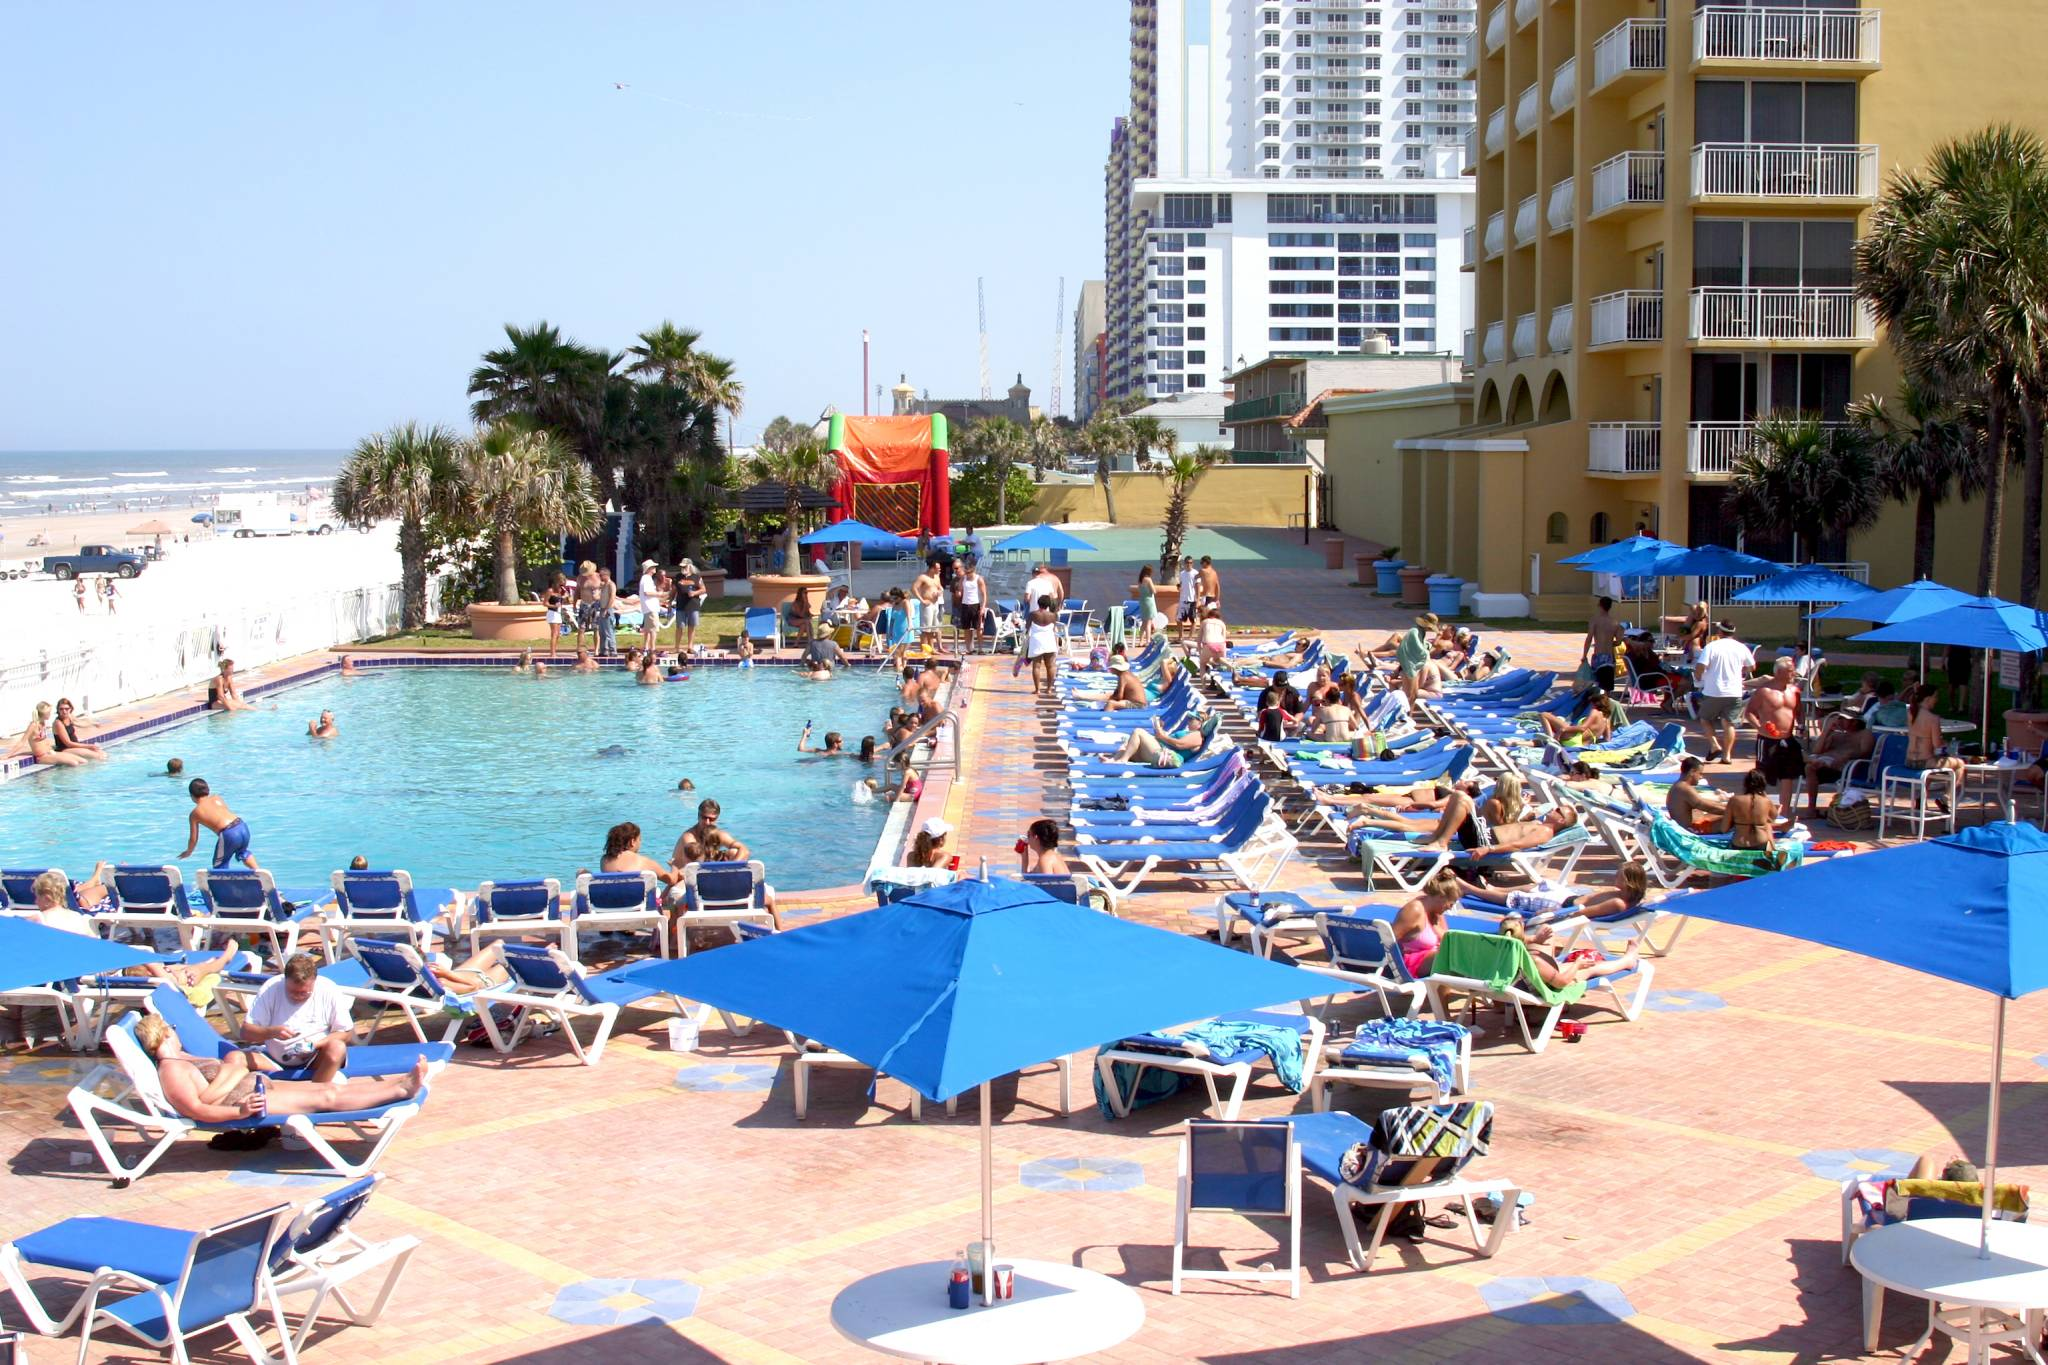 All the Buyers need to know about Daytona condo-hotels